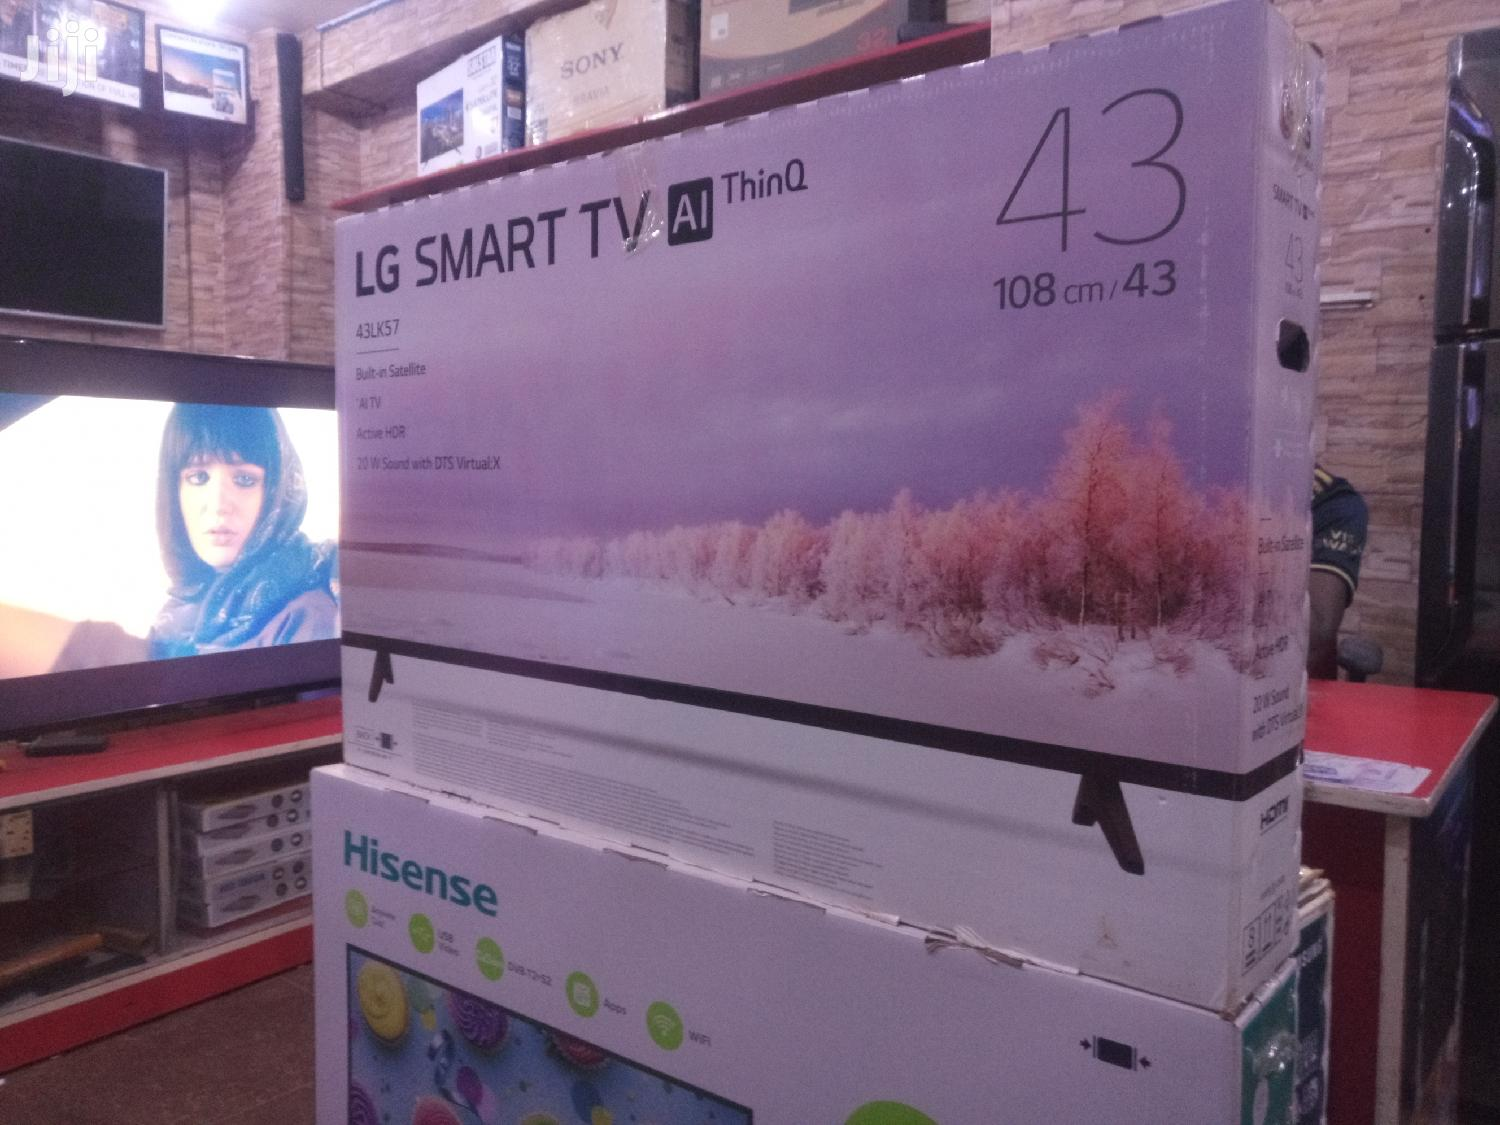 LG 43inches Uhd Smart TV